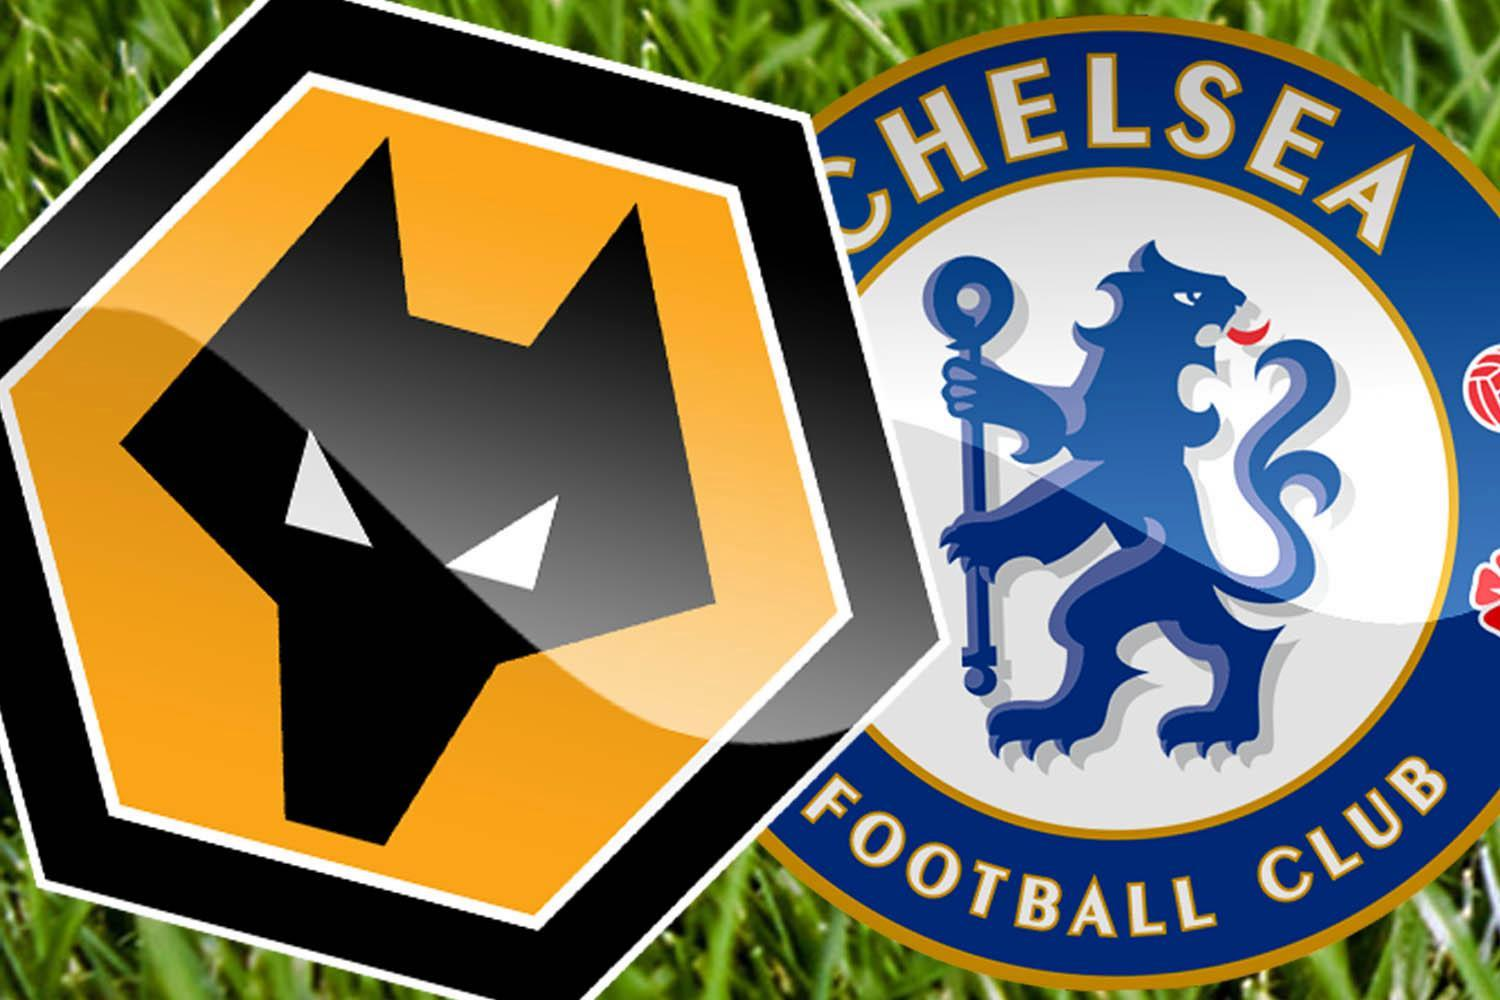 Wolves 2 Chelsea 1 LIVE SCORE: Latest commentary and updates for the Premier League tie